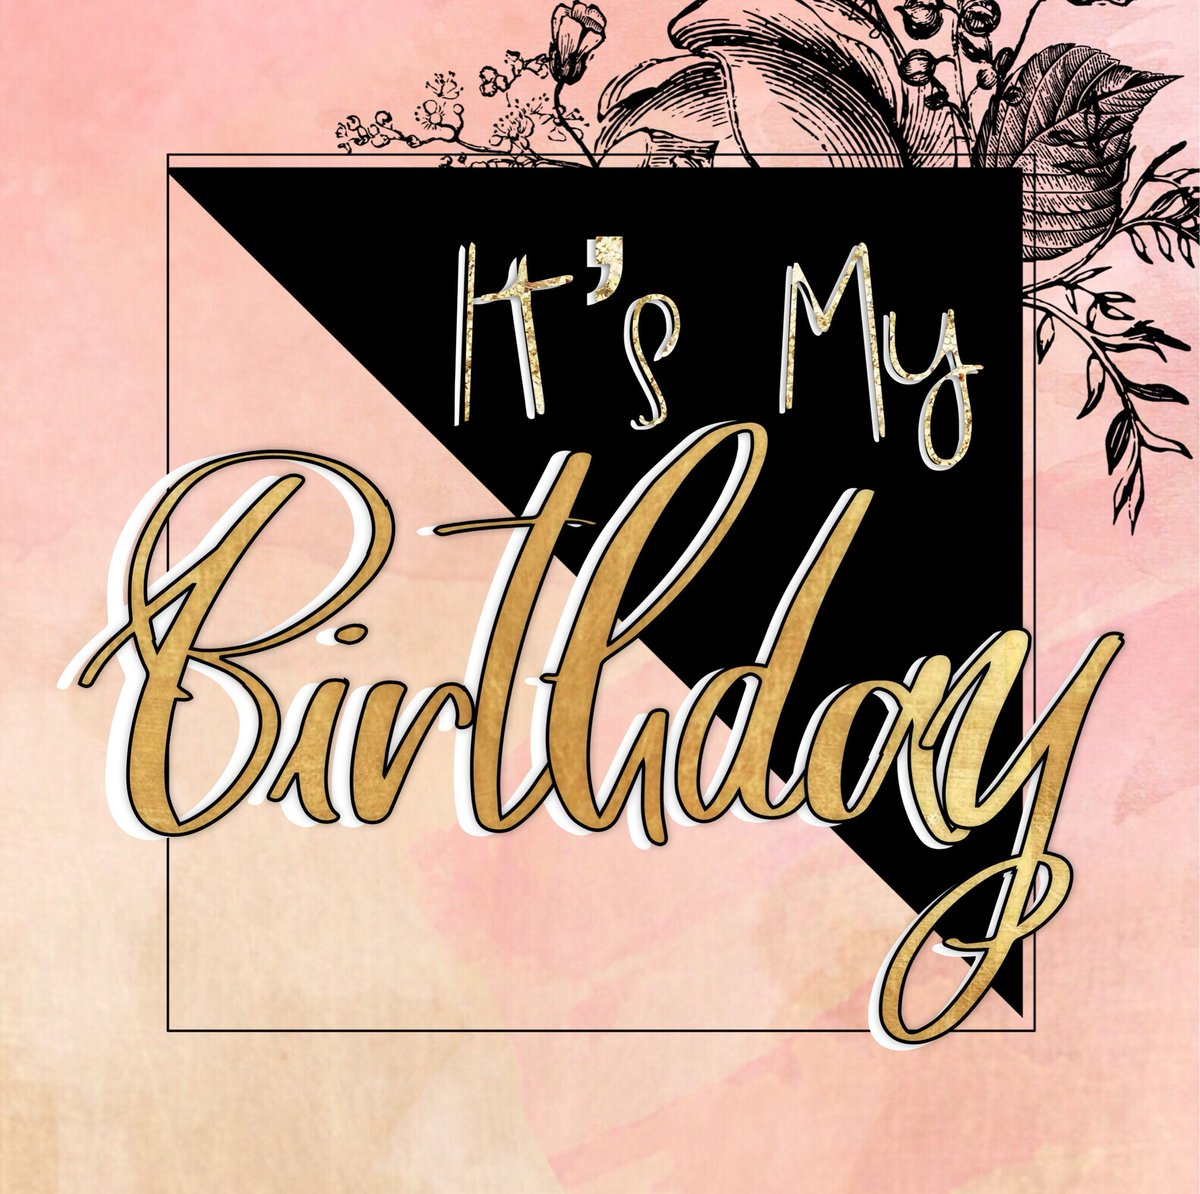 test Twitter Media - You're only as old as you feel, right?? 🎉🎂🤷🏼♀️ #wegonnaparty #causeitsmybirthday https://t.co/SQrRCM0gt4